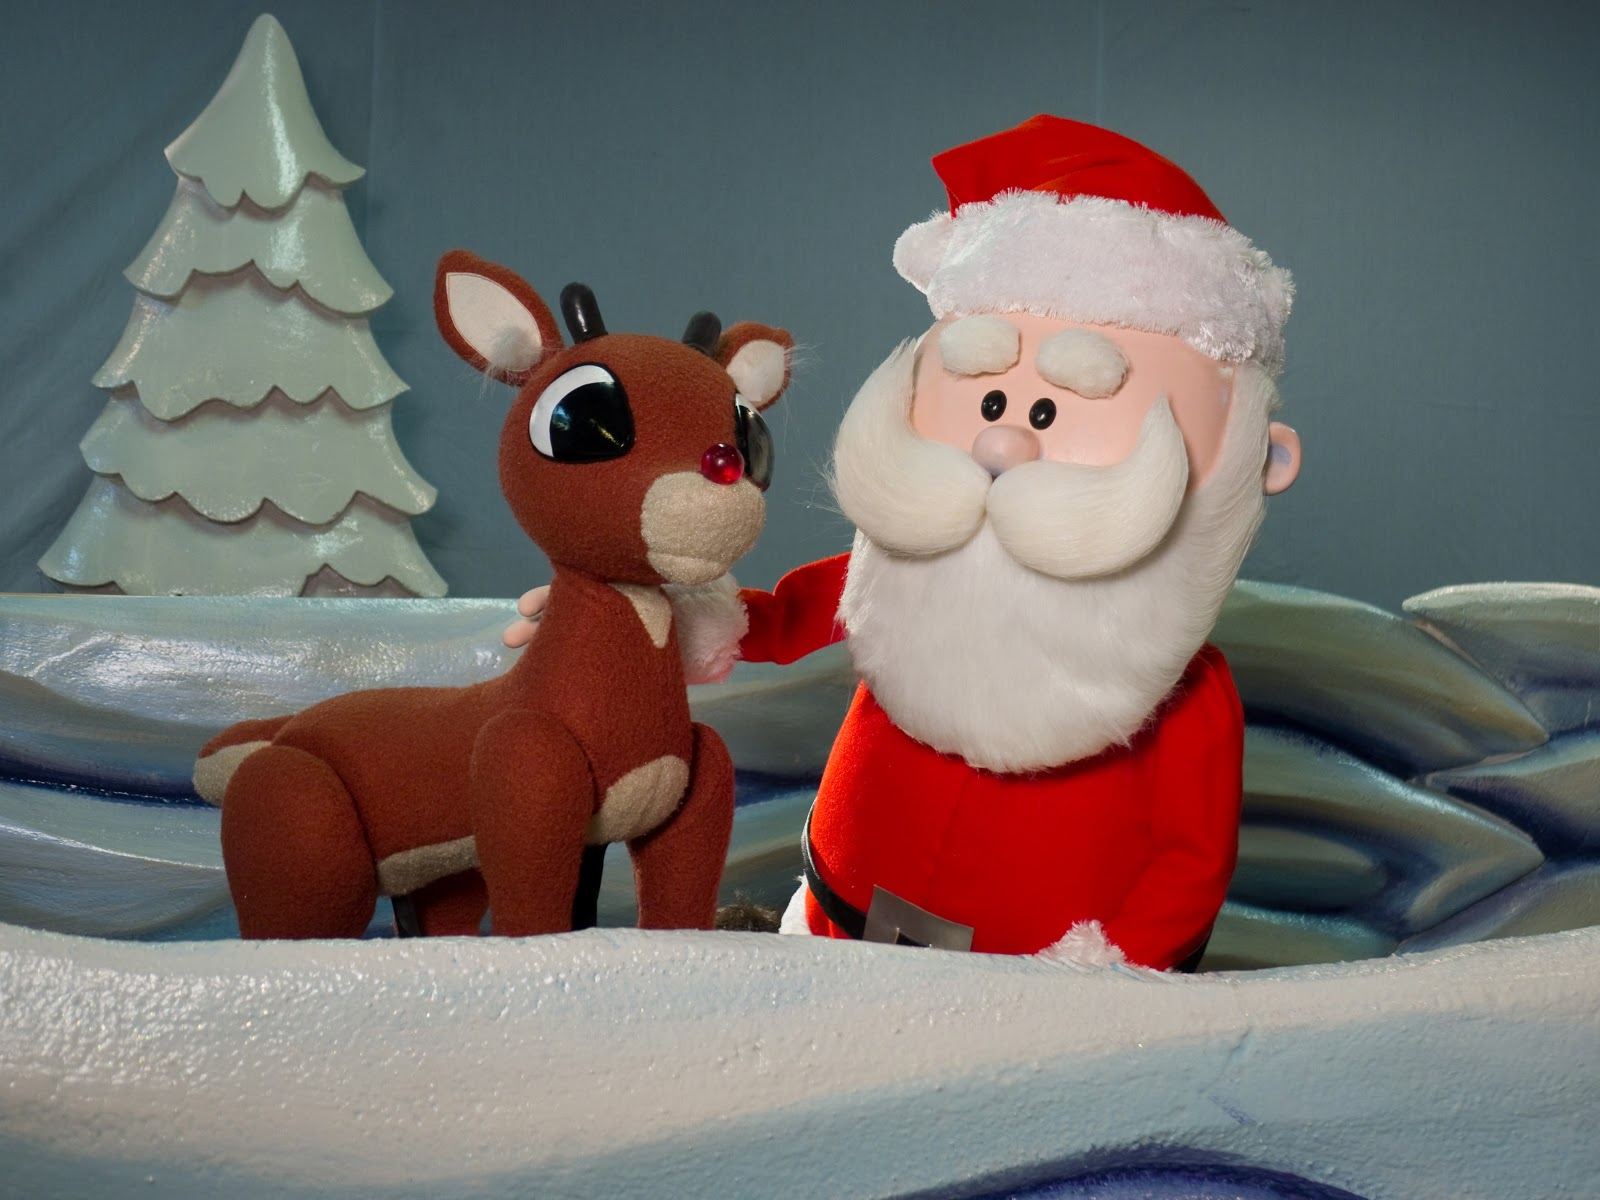 rudolph the red nosed reindeer - photo #33